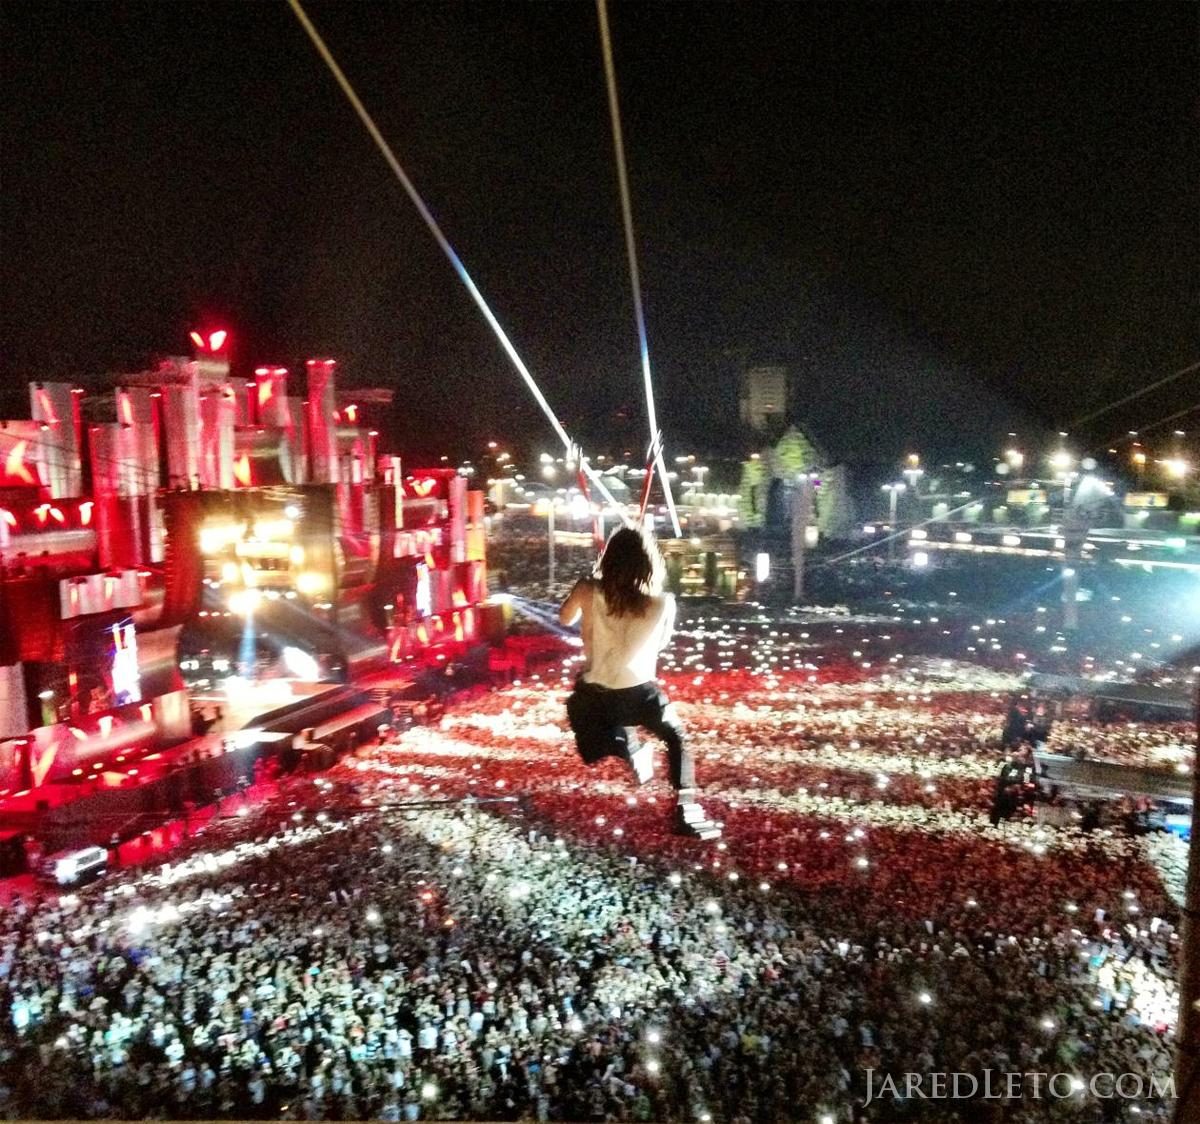 NOTES FROM THE OUTERNET Photo Flashback: Me ziplining at ROCK IN RIO - http://t.co/XwmPbf7yIF http://t.co/KwQ8Bbxy5O